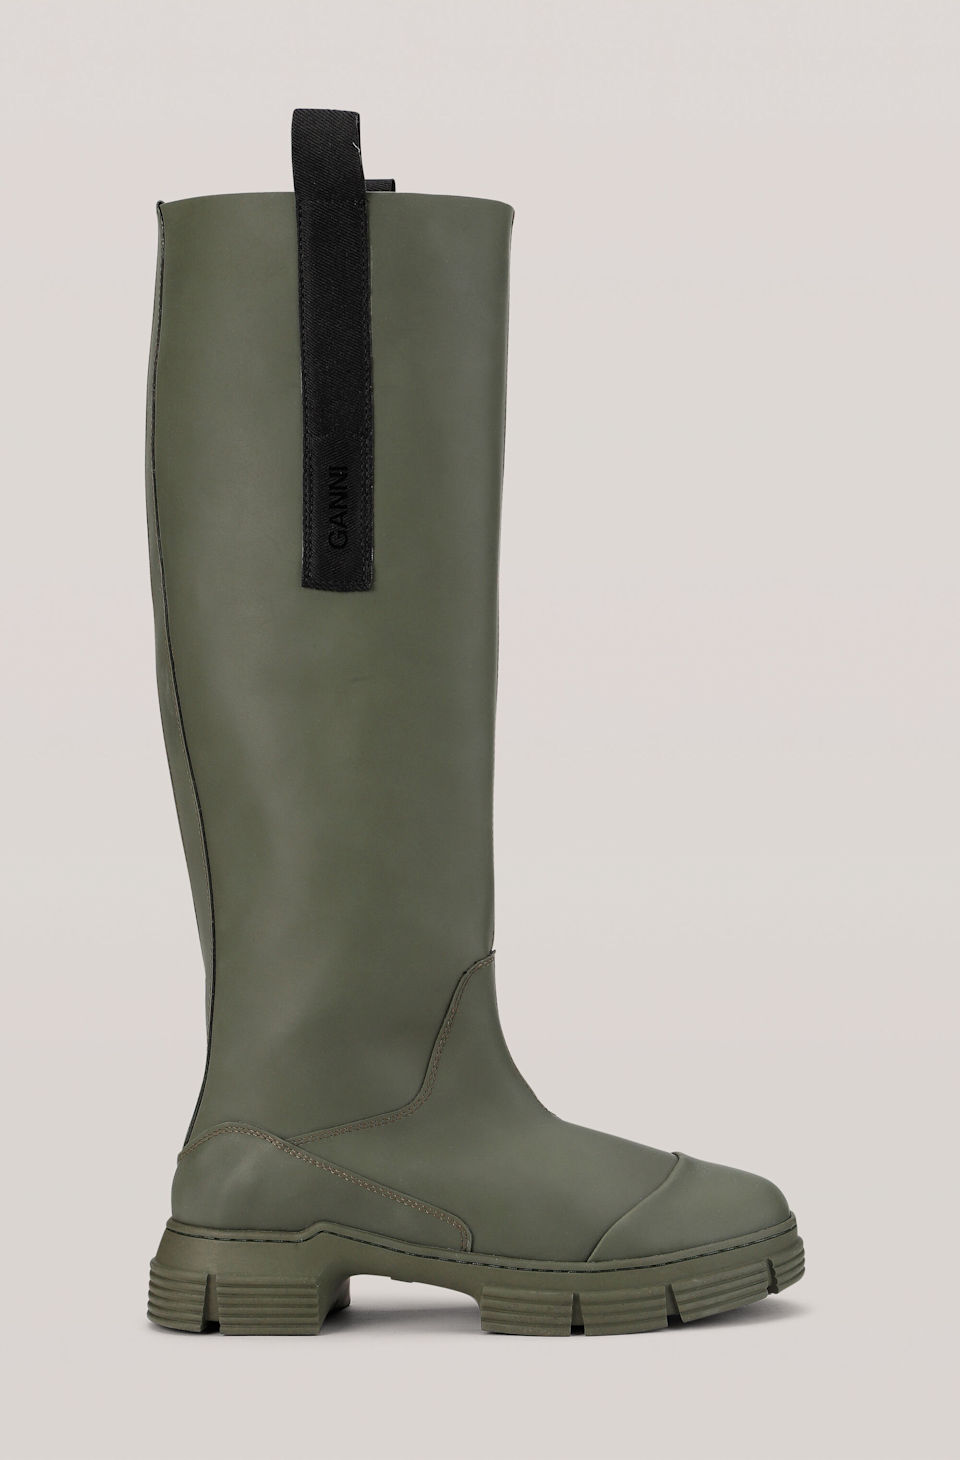 """<br><br><strong>Ganni</strong> Recycled Rubber Country Boots, $, available at <a href=""""https://go.skimresources.com/?id=30283X879131&url=https%3A%2F%2Fwww.ganni.com%2Fus%2Frecycled-rubber-country-boot-S1222.html%3Fdwvar_S1222_color%3DKalamata"""" rel=""""nofollow noopener"""" target=""""_blank"""" data-ylk=""""slk:Ganni"""" class=""""link rapid-noclick-resp"""">Ganni</a>"""